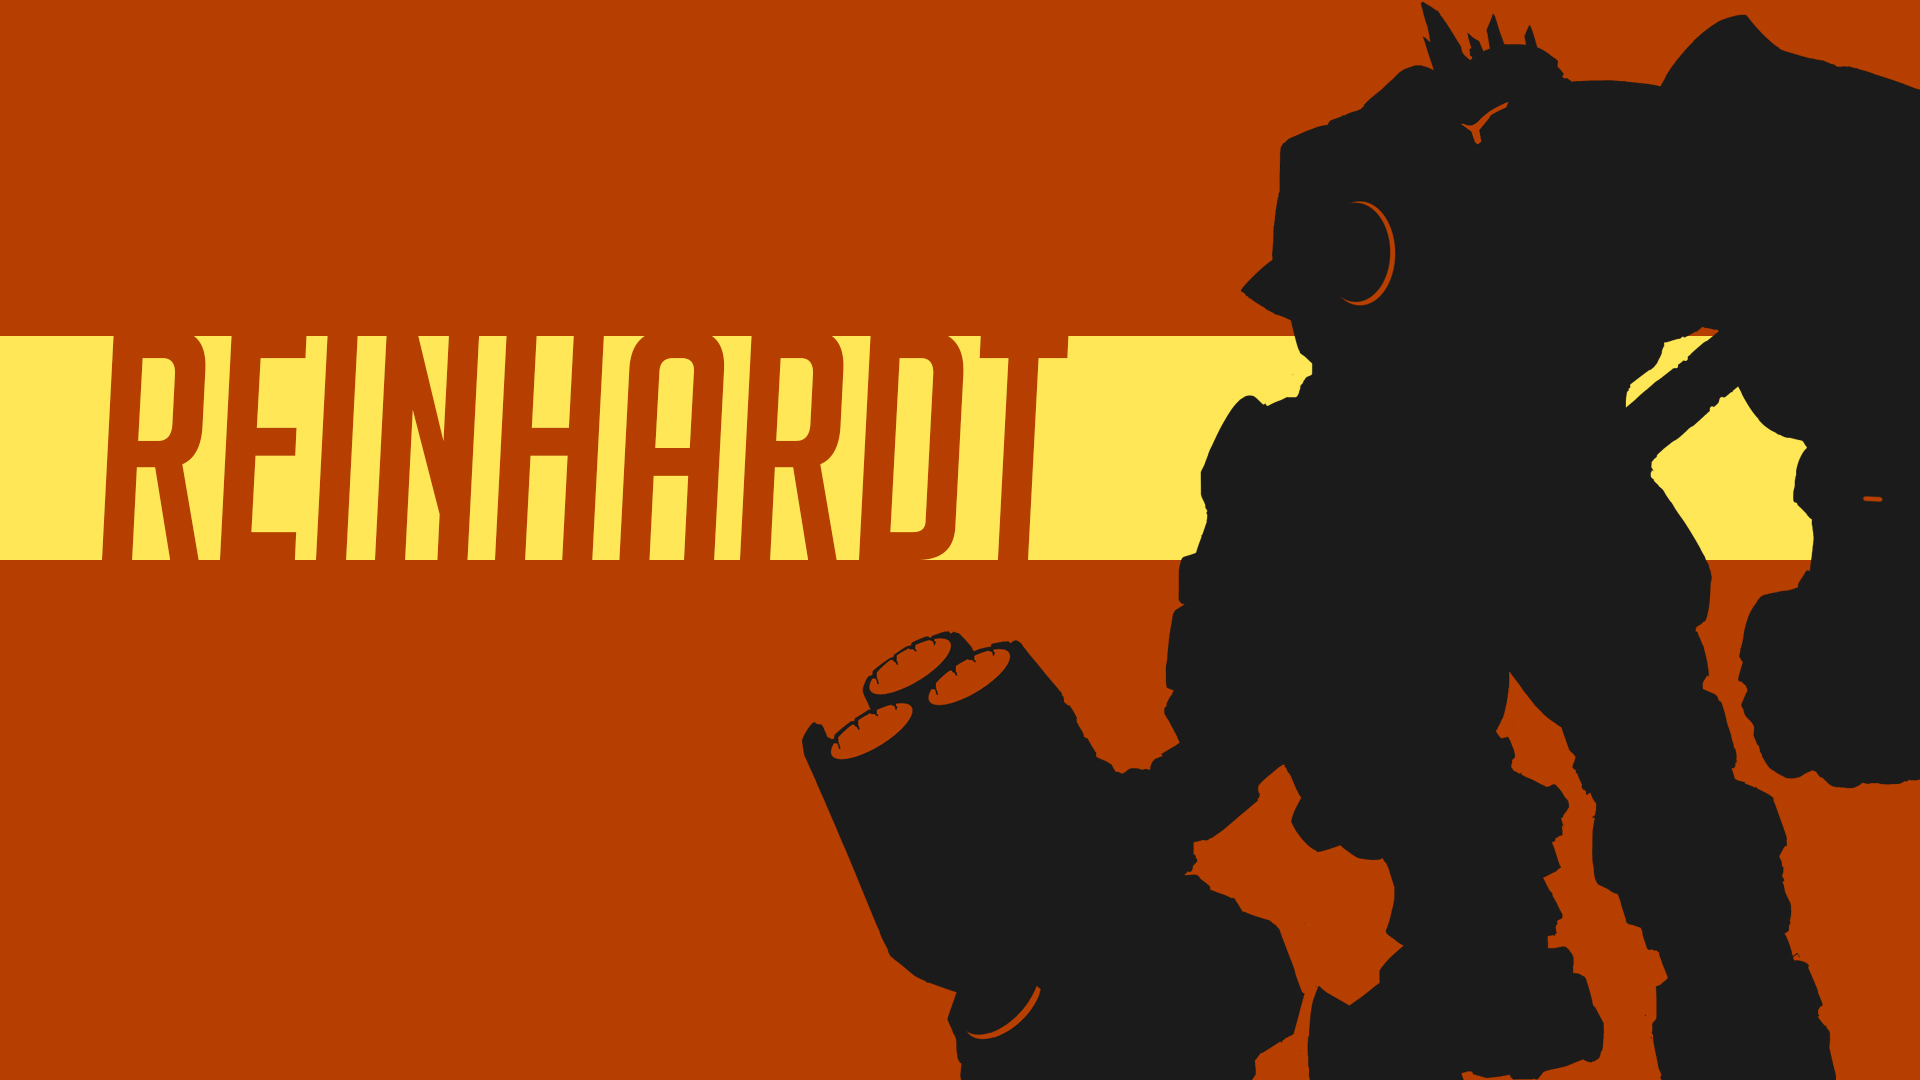 Overwatch minimalist clipart image transparent download Would anyone like more wallpapers in this style? : Overwatch image transparent download